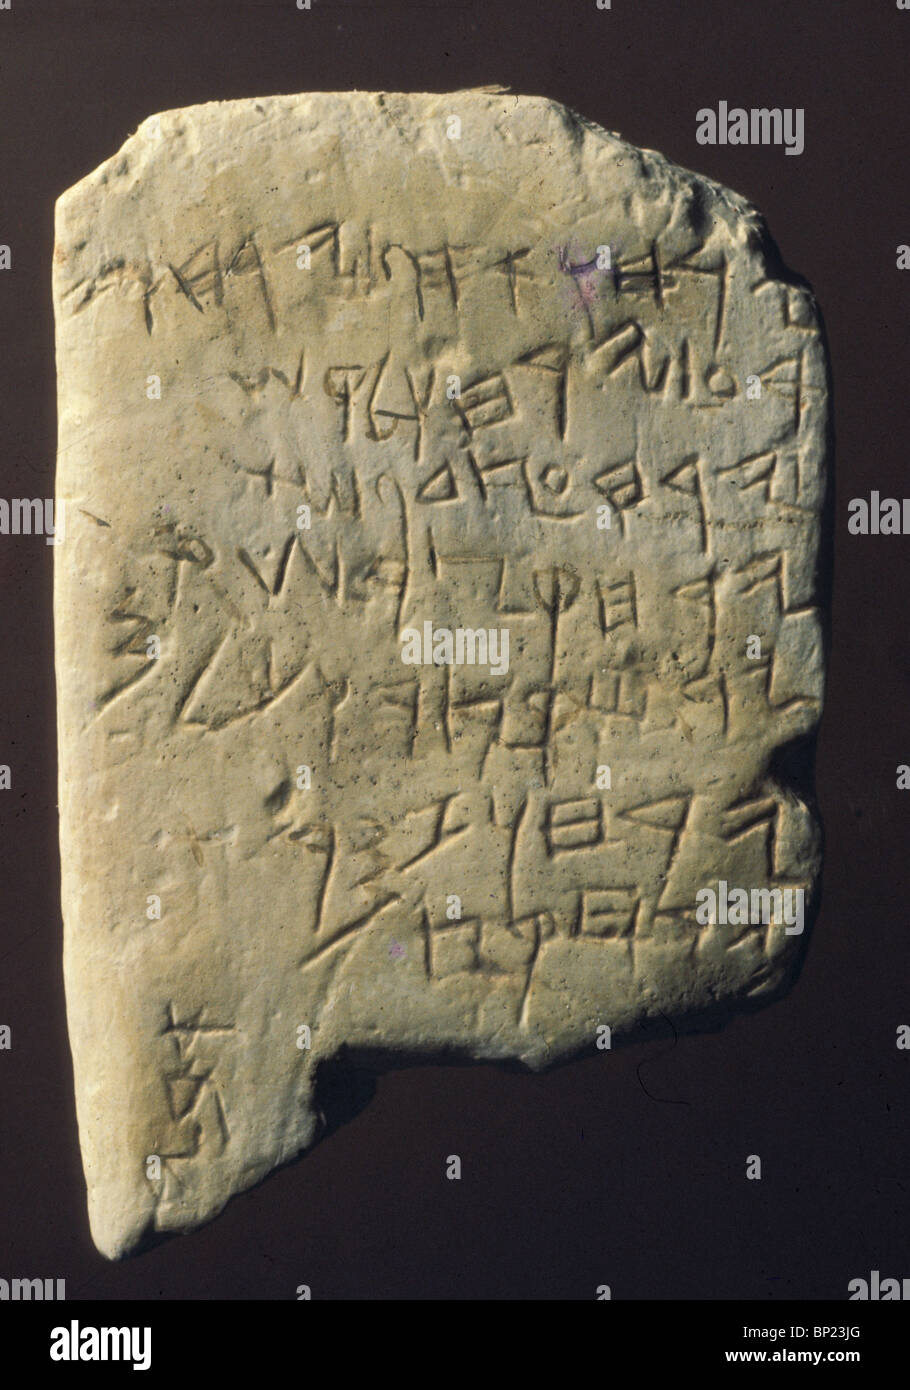 GEZER CALENDAR AN INSCRIPTION IN ANCIENT HEBREW SCRIPT ENGRAVED ON A LIMESTONE. POSSIBLY THE OLDEST HEBREW INSCRIPTION - Stock Image